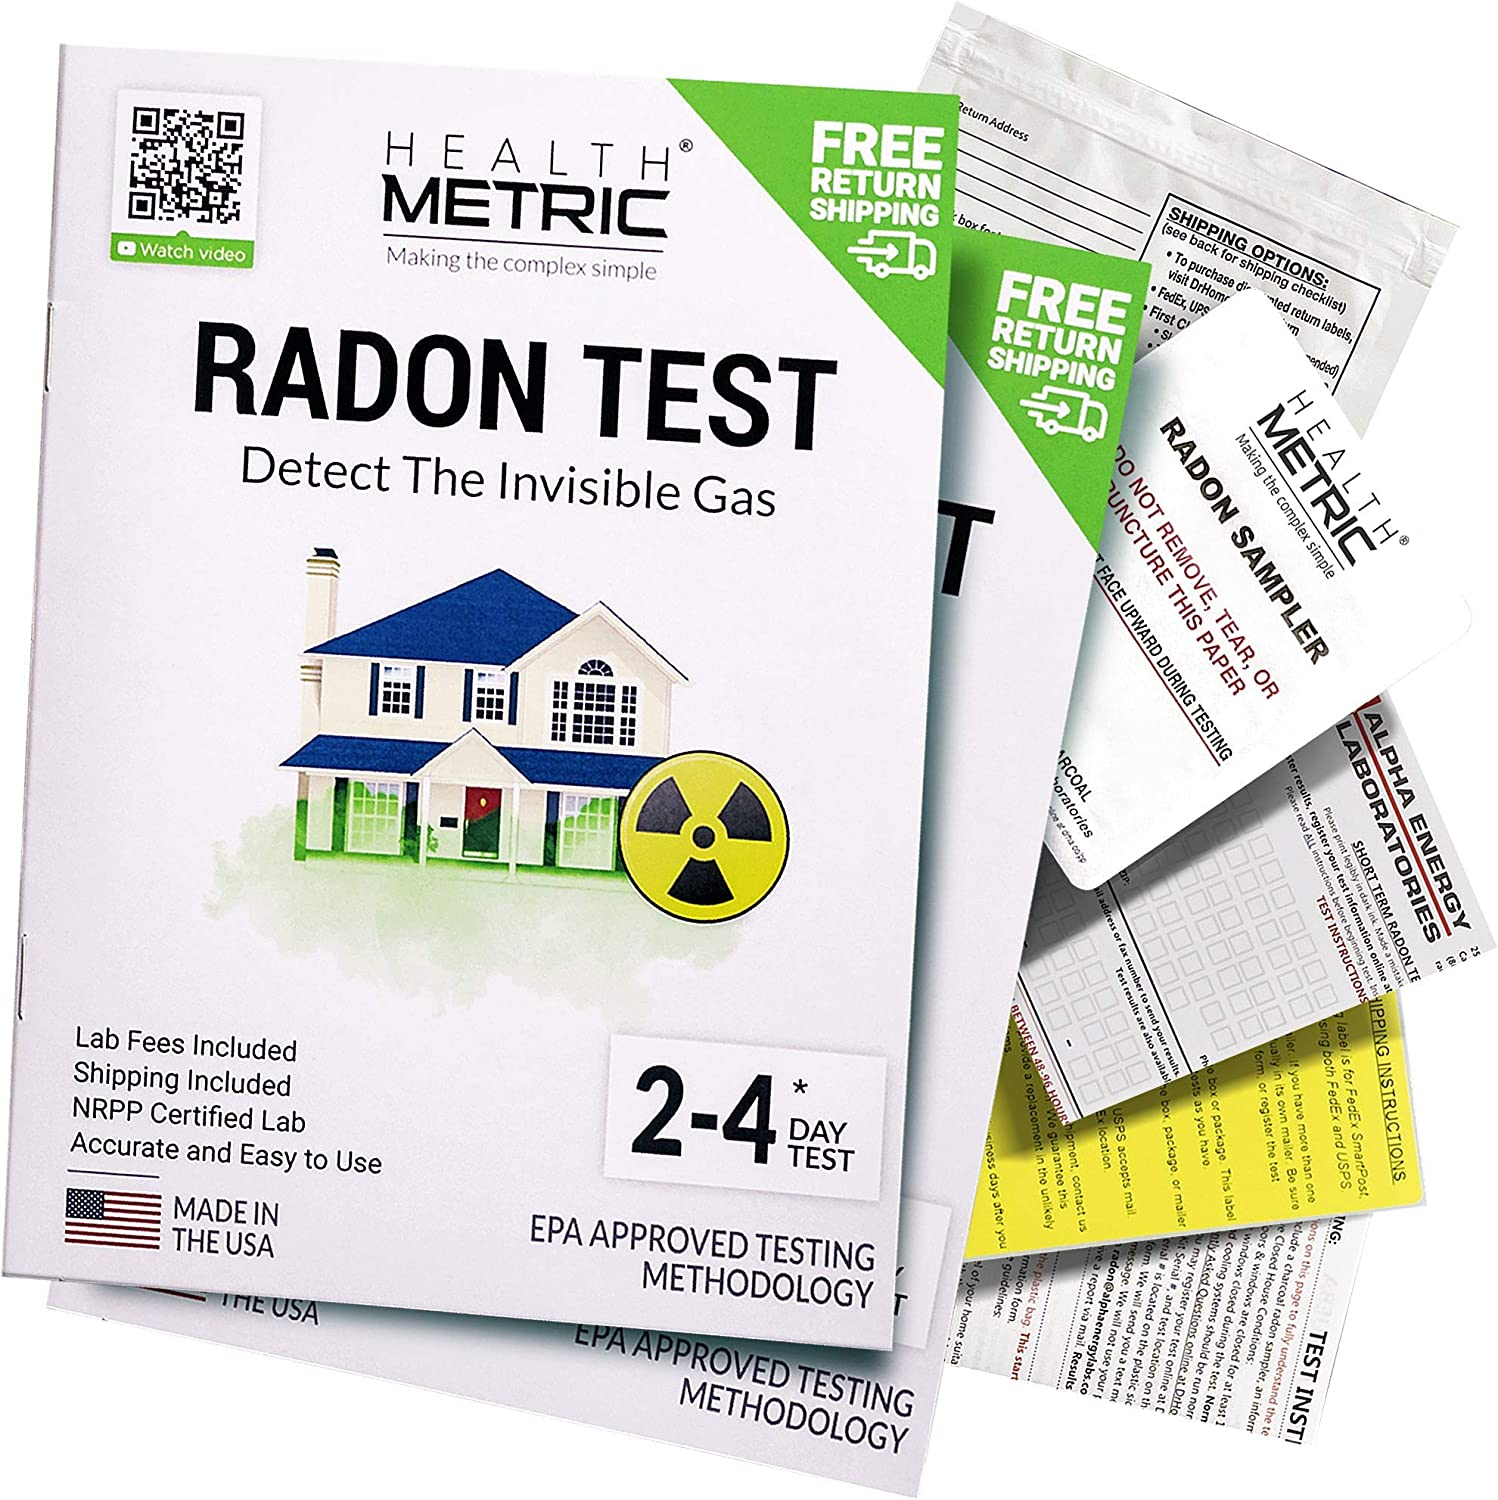 Radon Test Kit for Home - Shipping & Lab Fees Included   Easy to Use Charcoal Radon Gas Detector for Testing 2 Locations   48h Short Term EPA Approved Radon Tester   Fully Certified Lab Testing